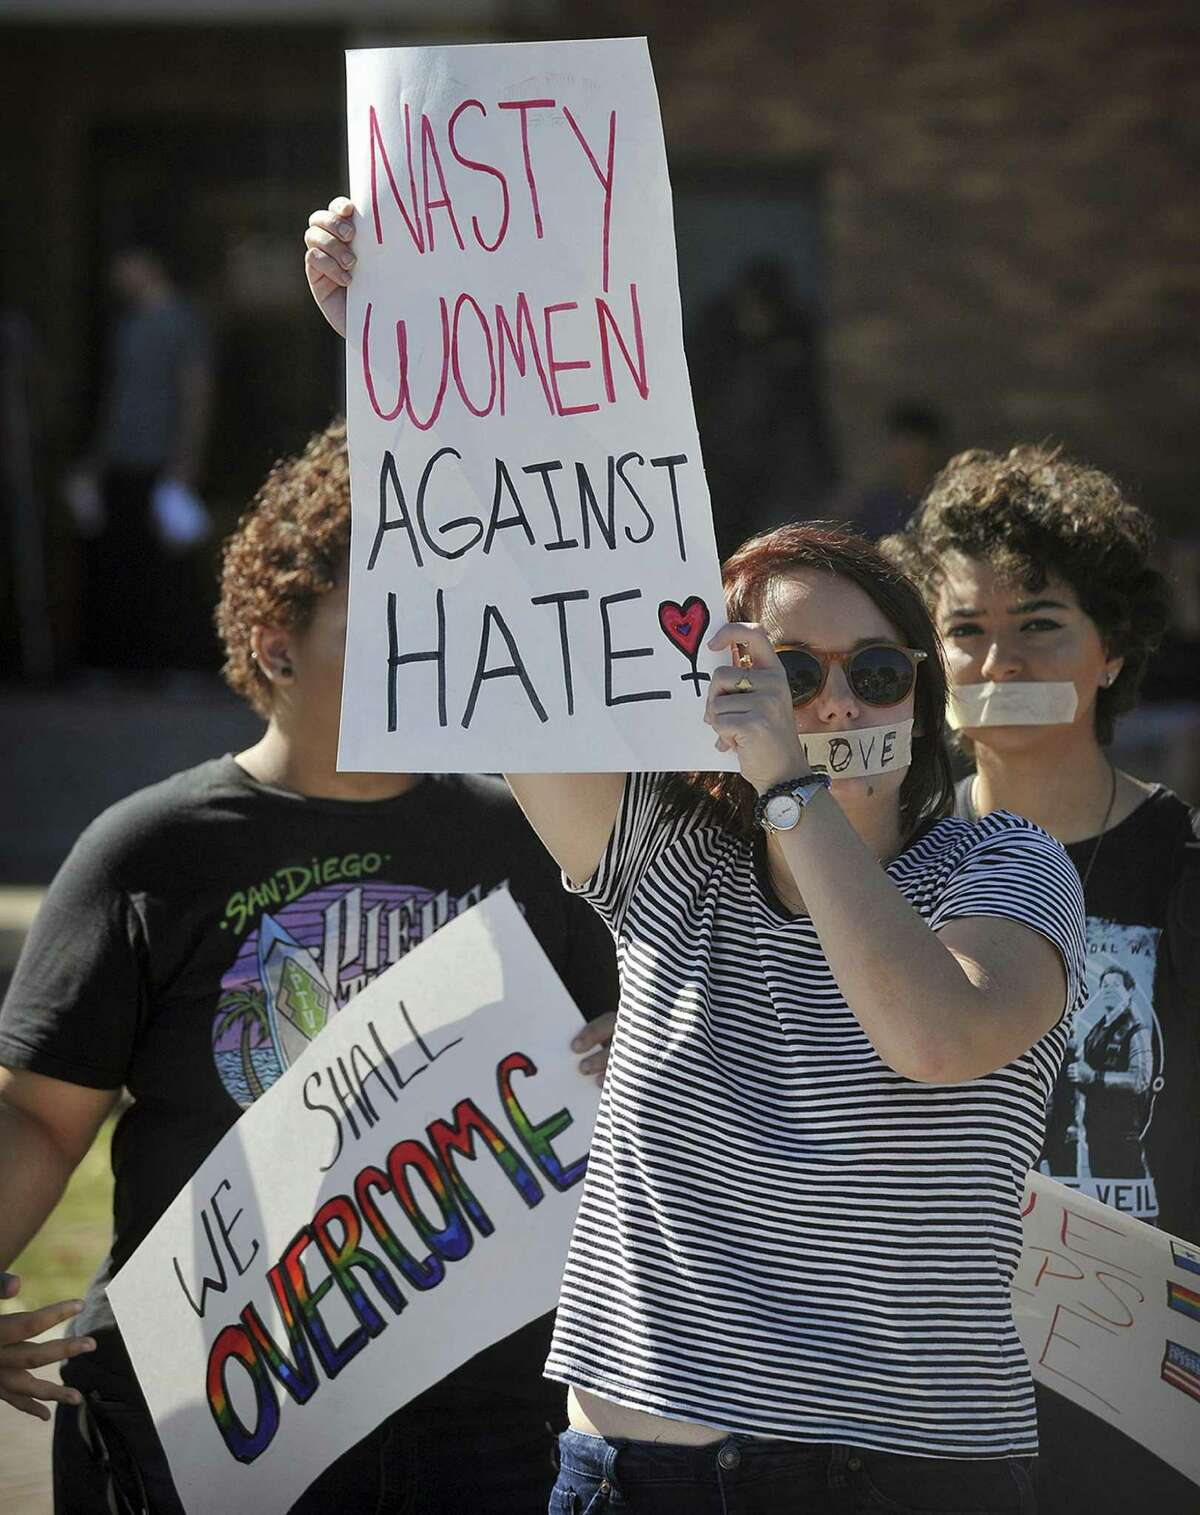 The election of Donald Trump has spawned fears on many Texas campuses. Eliza Cameron and several other Midwestern State University students march in protest of President-elect Donald Trump around campus on Nov. 16 in Wichita Falls.